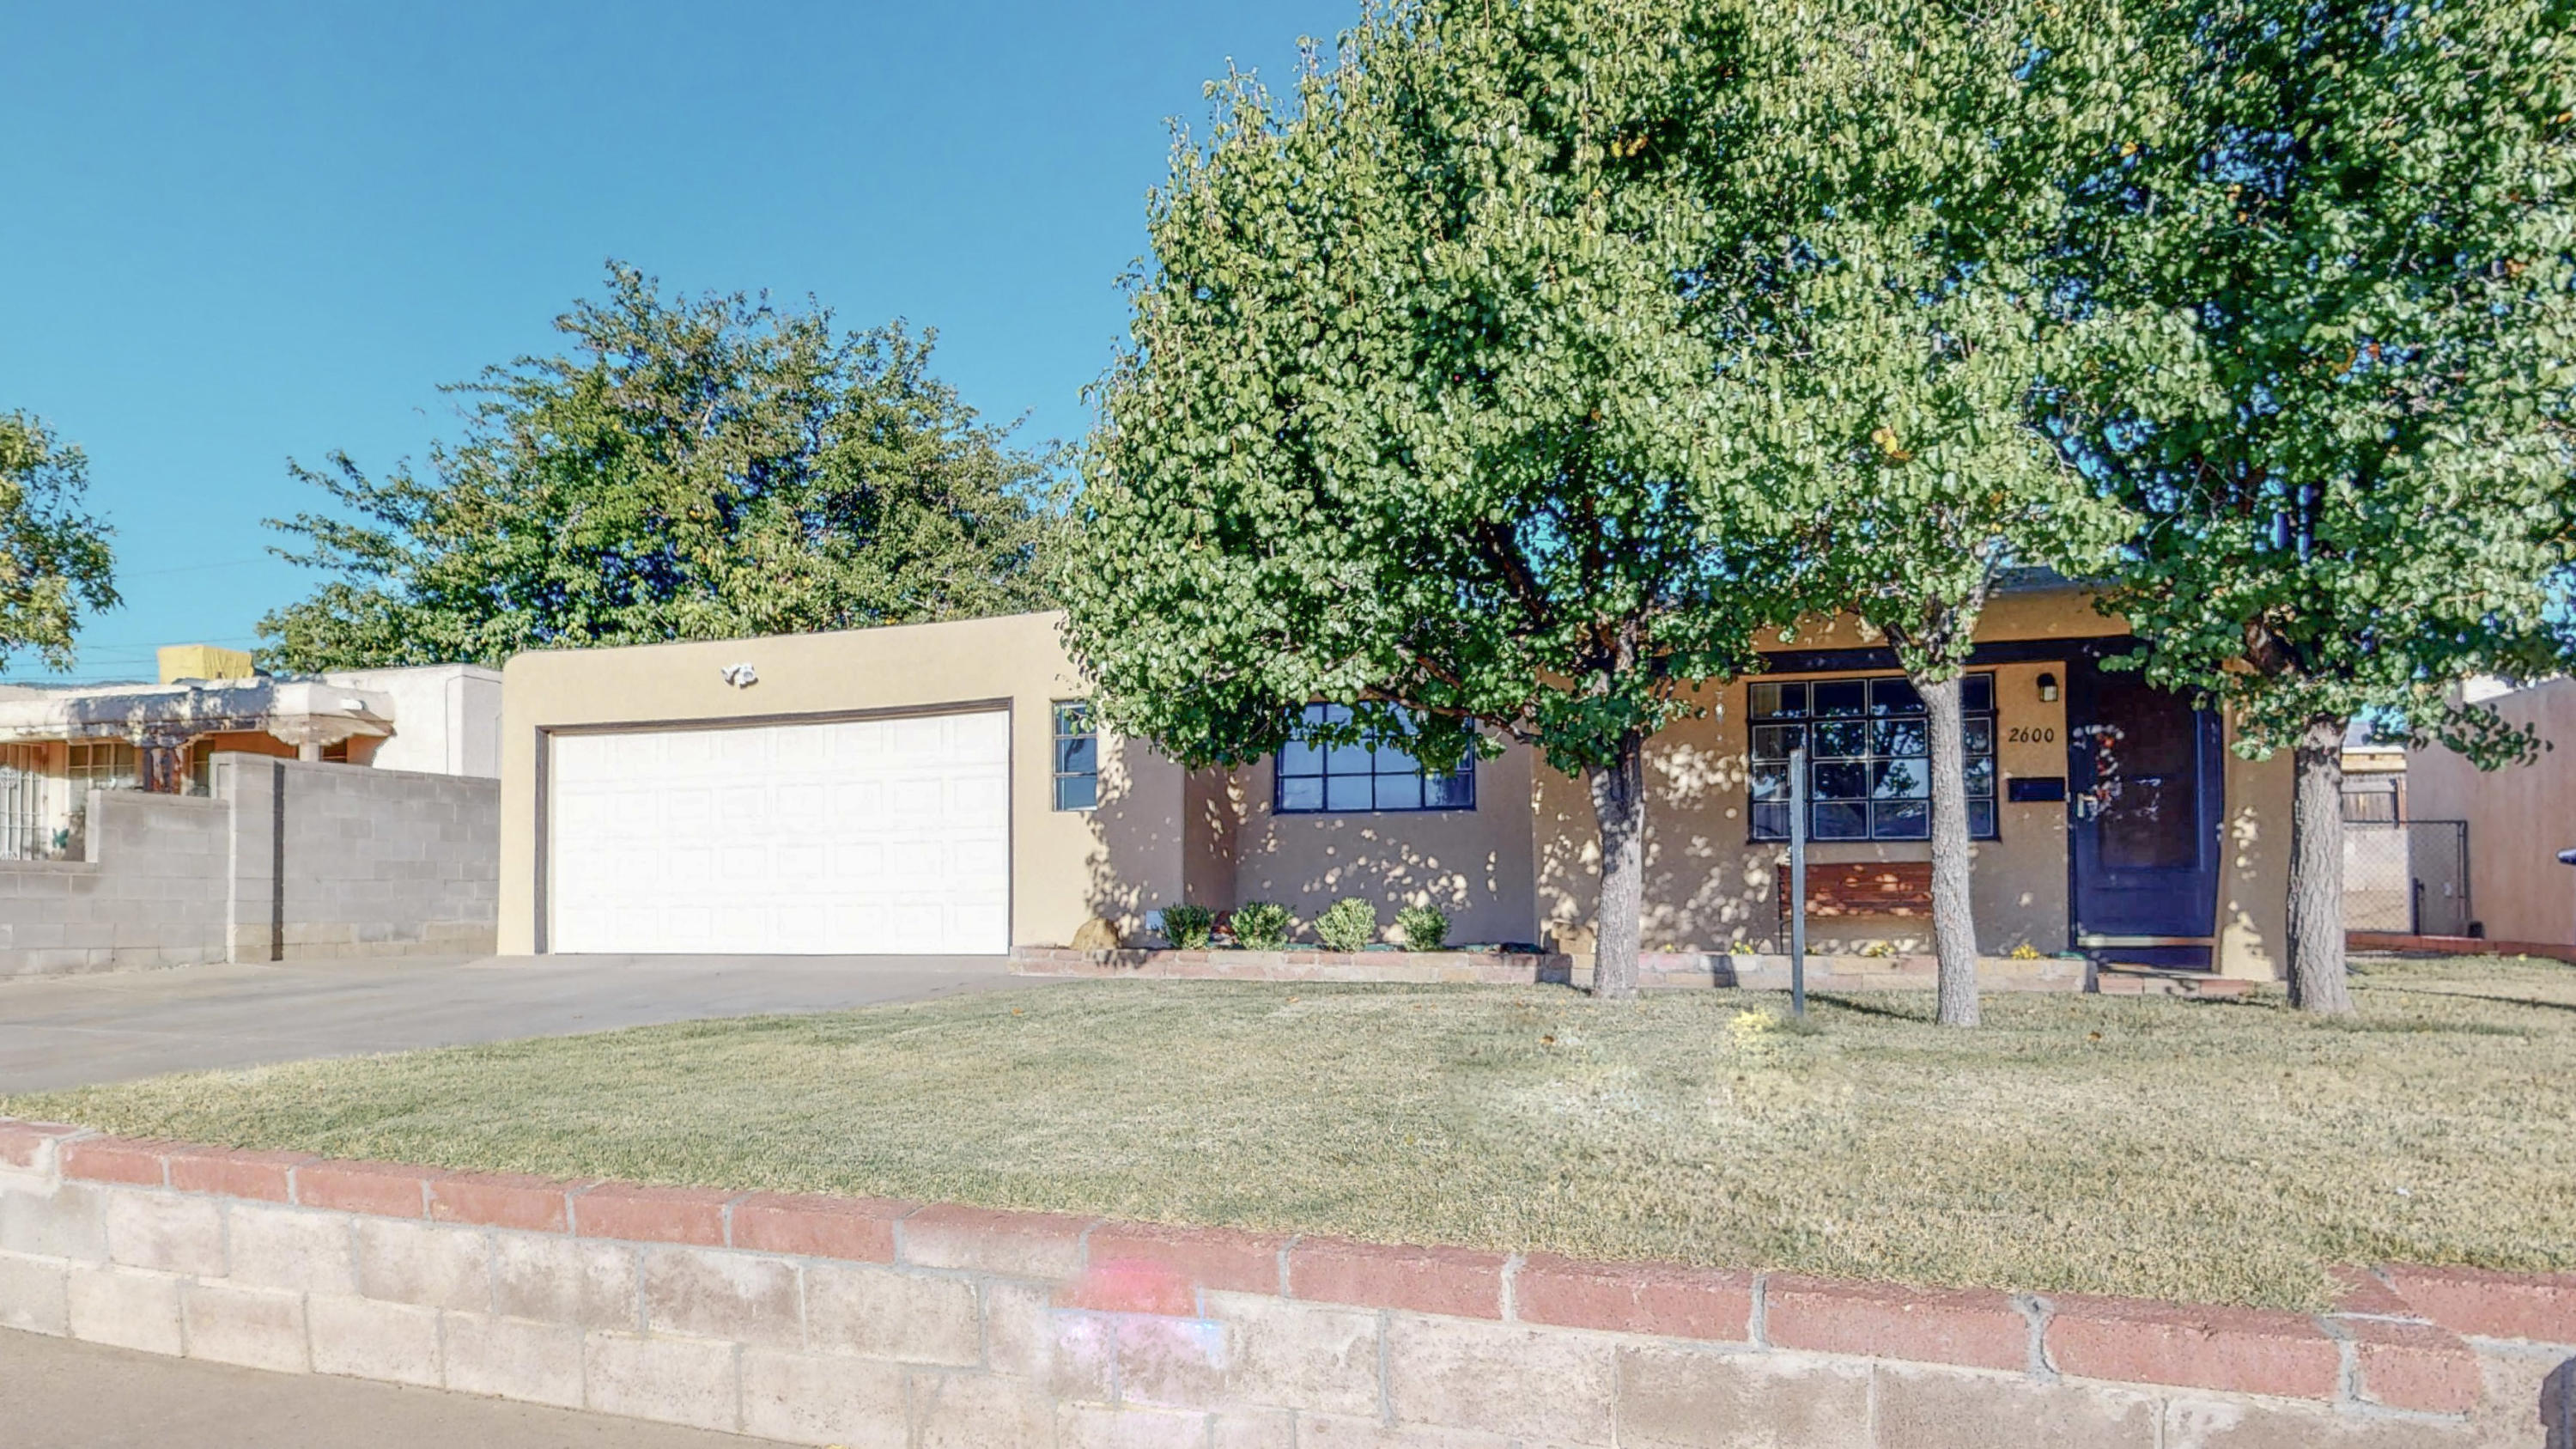 Nice 4 bedroom home with 2 large living rooms in very good condition located in Albuquerque's northeast heights.  This is a great price on this large home.  Roof is about 10 years old.  This home is in move in ready condition.  Put this on your list of must see homes.